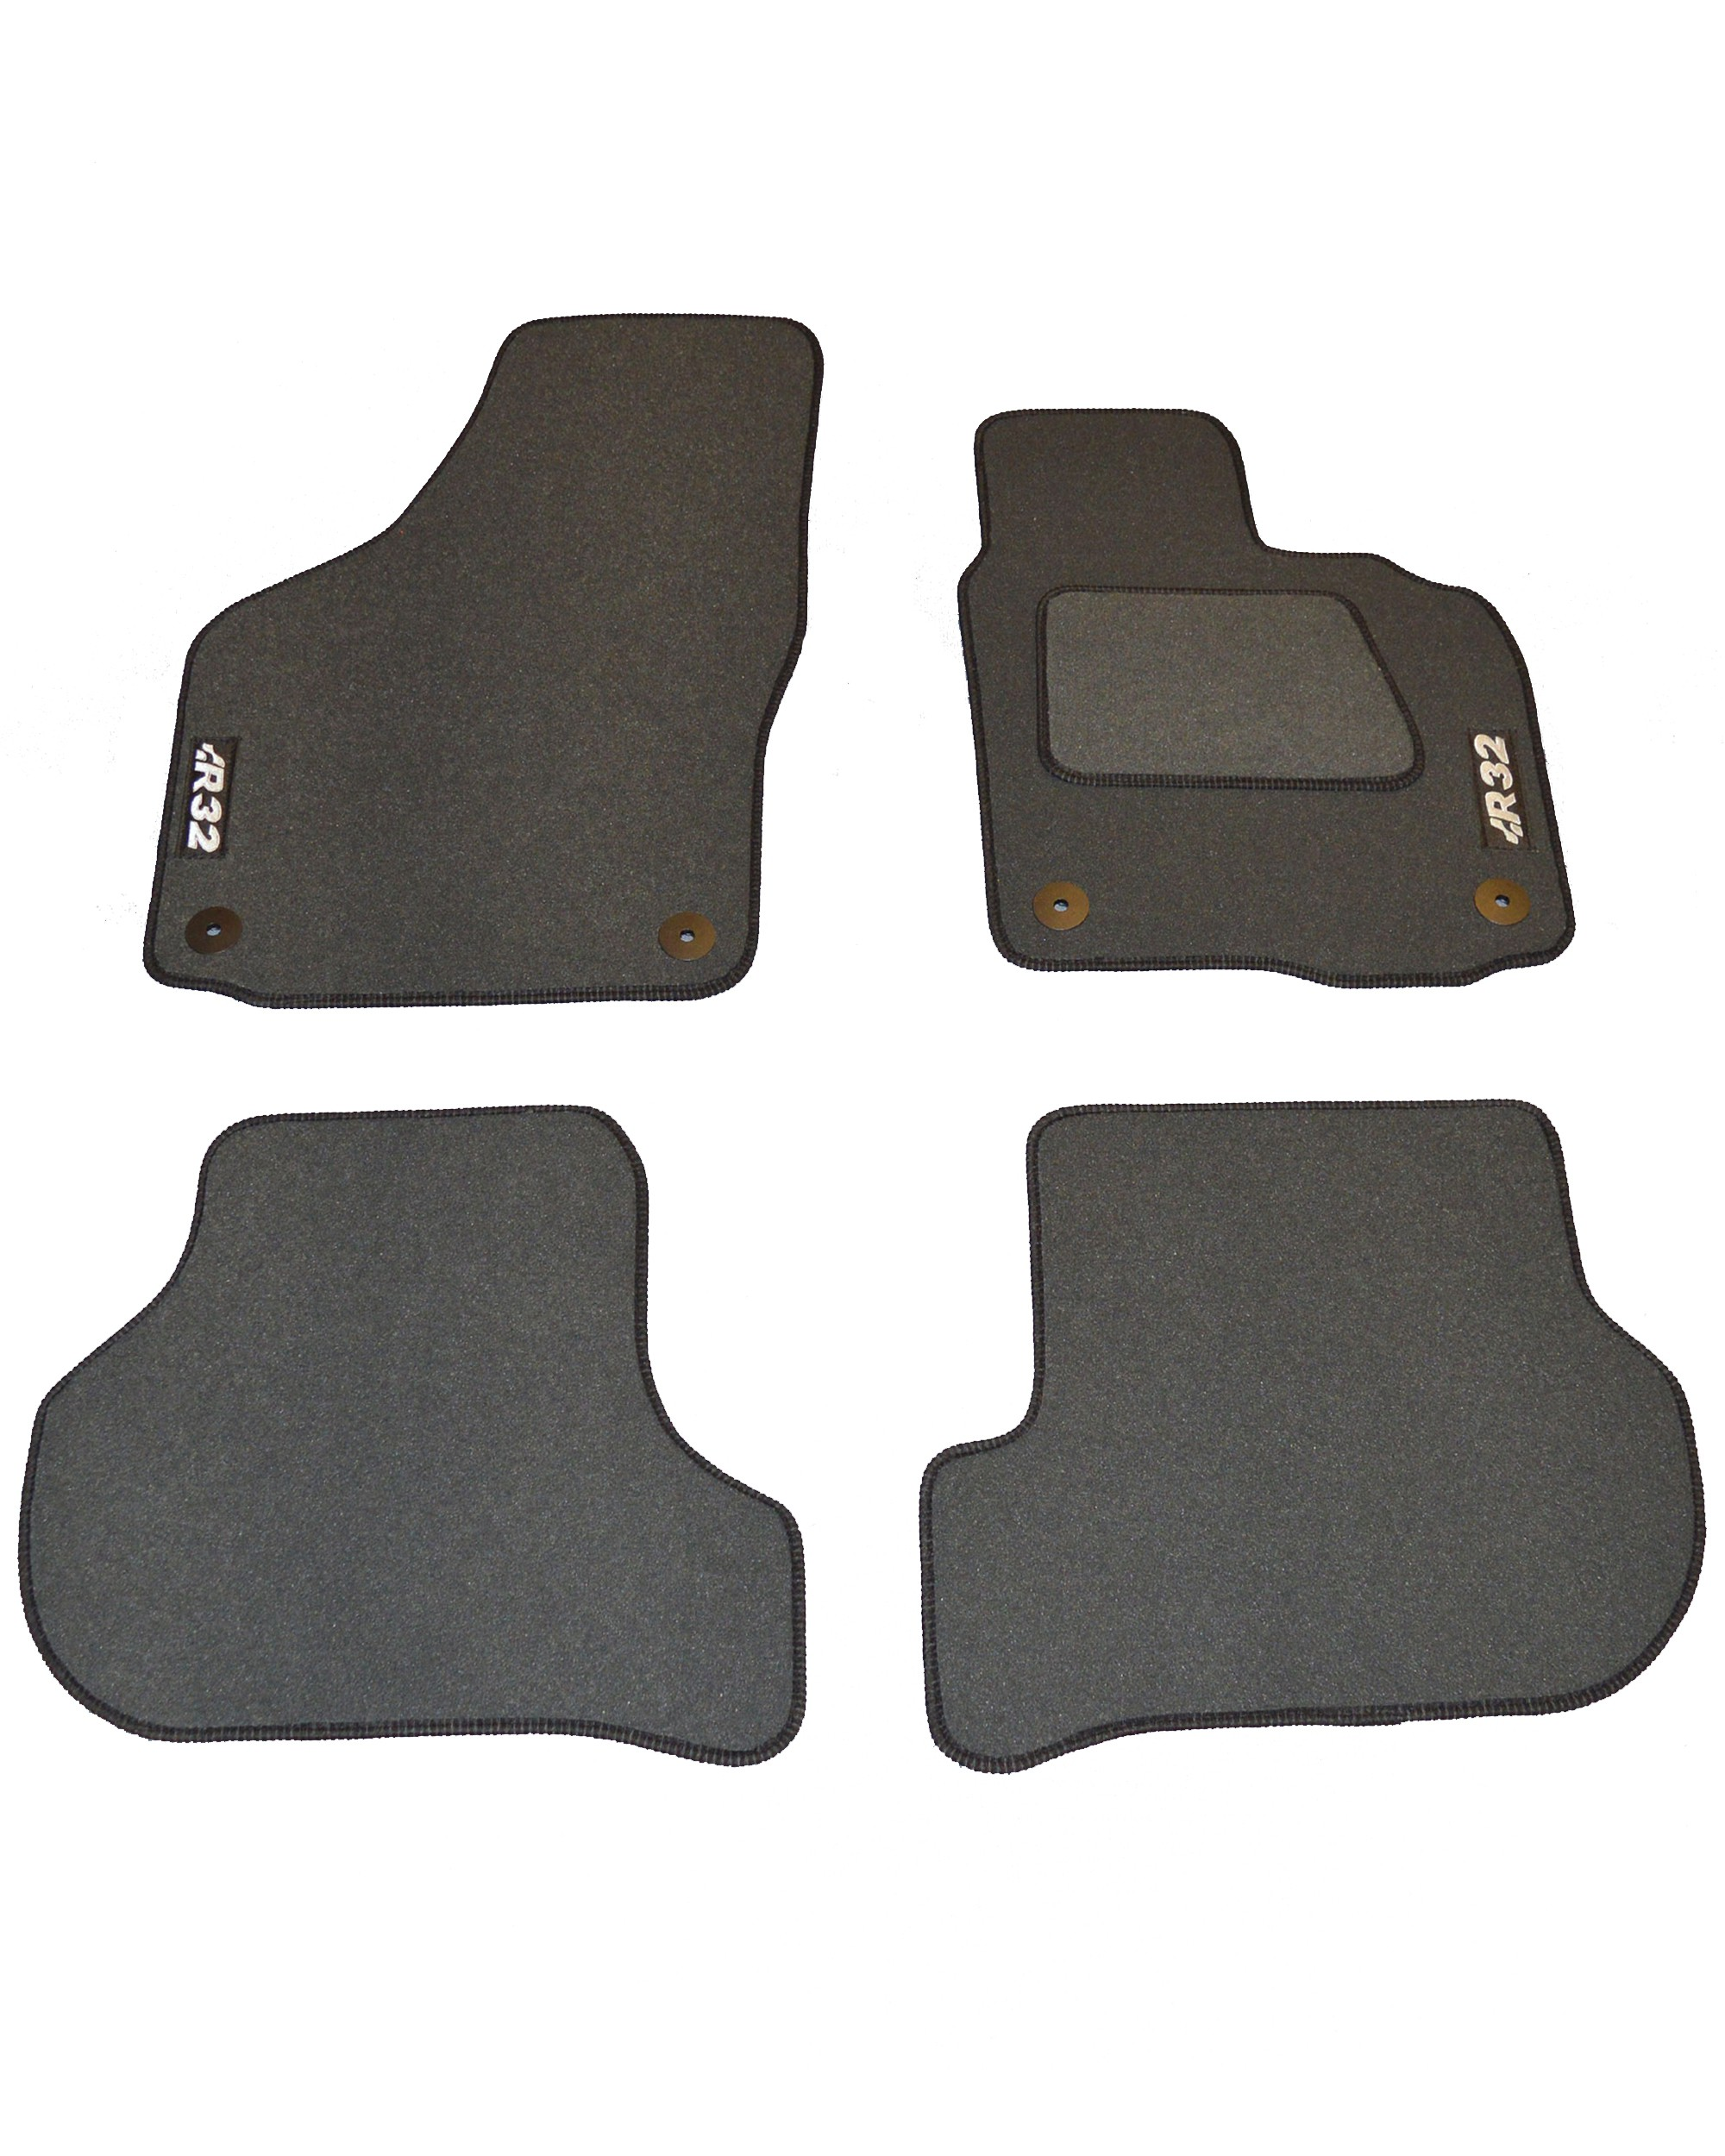 Volkswagen VW Golf MK5 R32 Tailored Car Floor Mats Grey Carpet